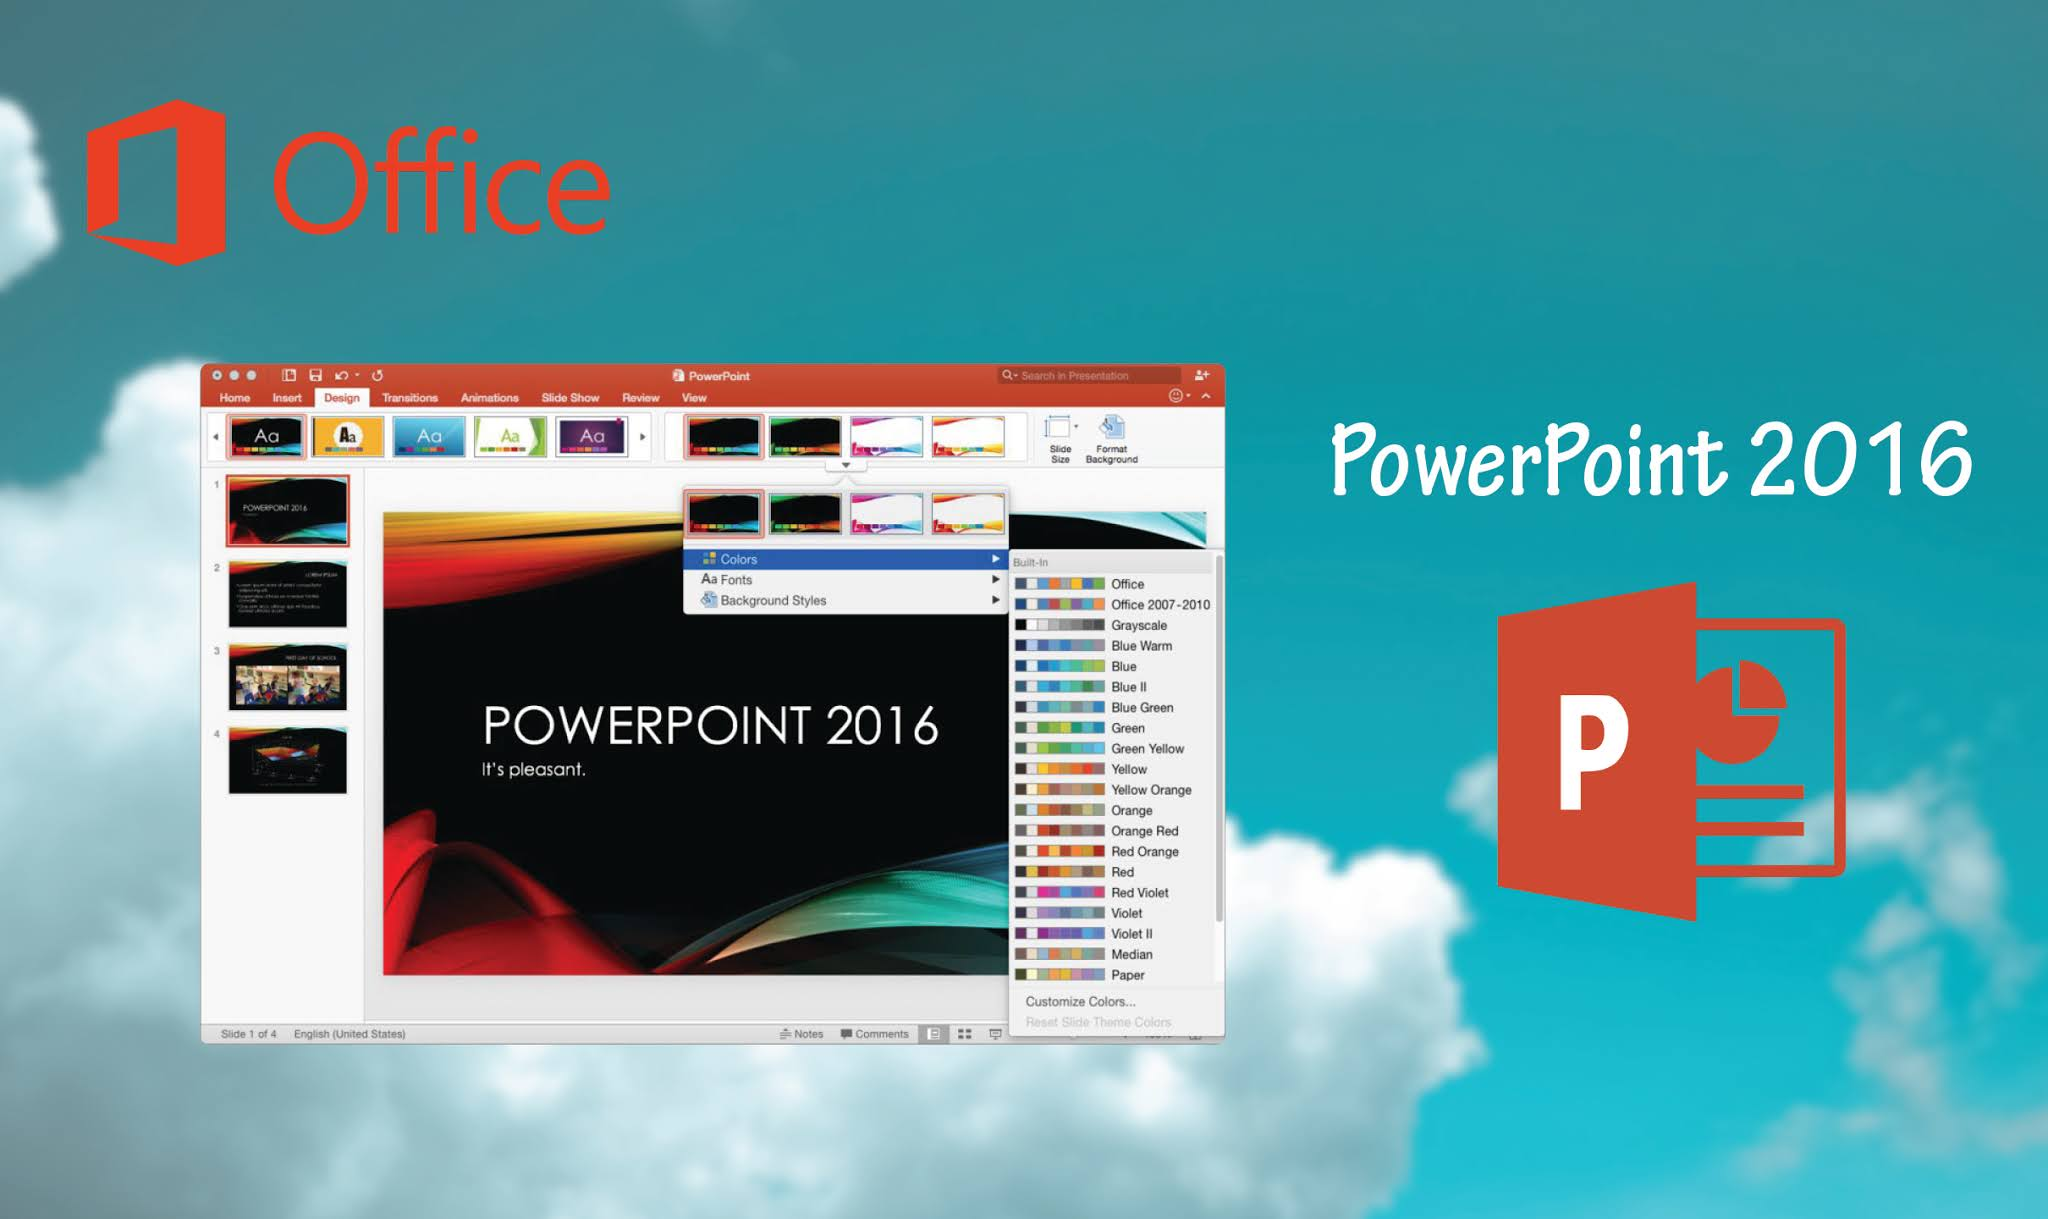 Microsoft Power Point 2016